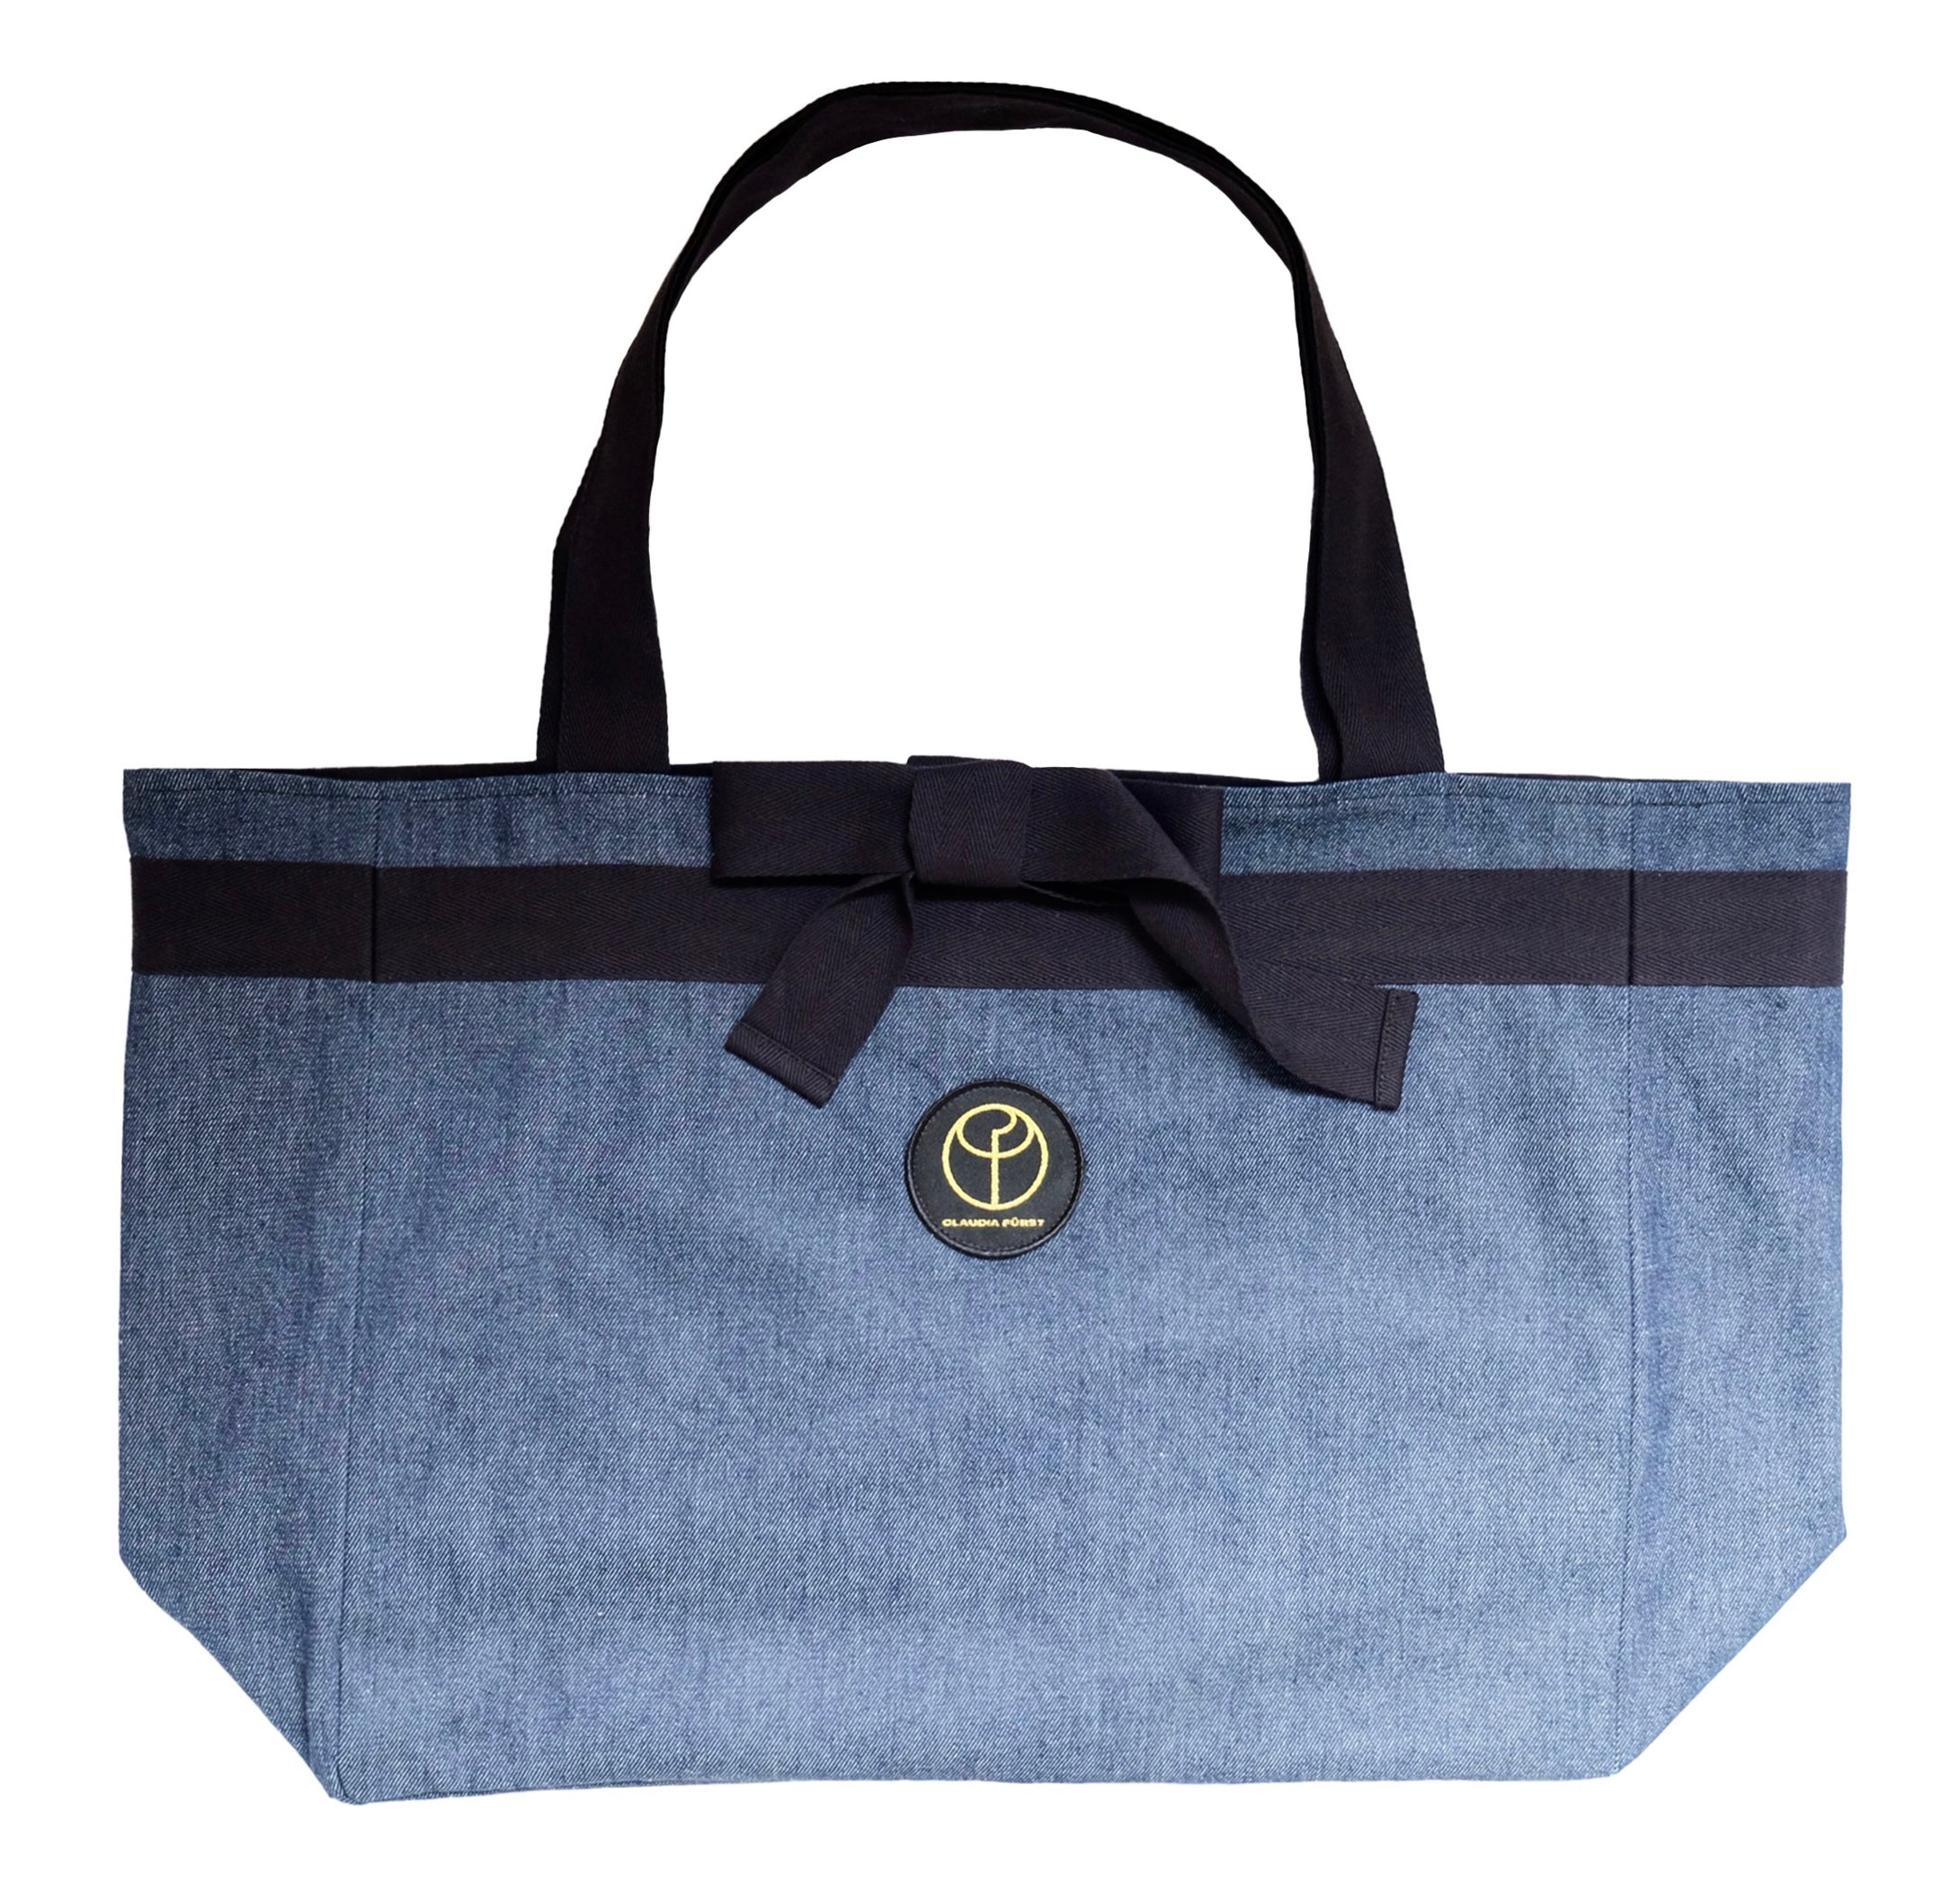 Claudia Fürst • Tote Bag • Denim • L